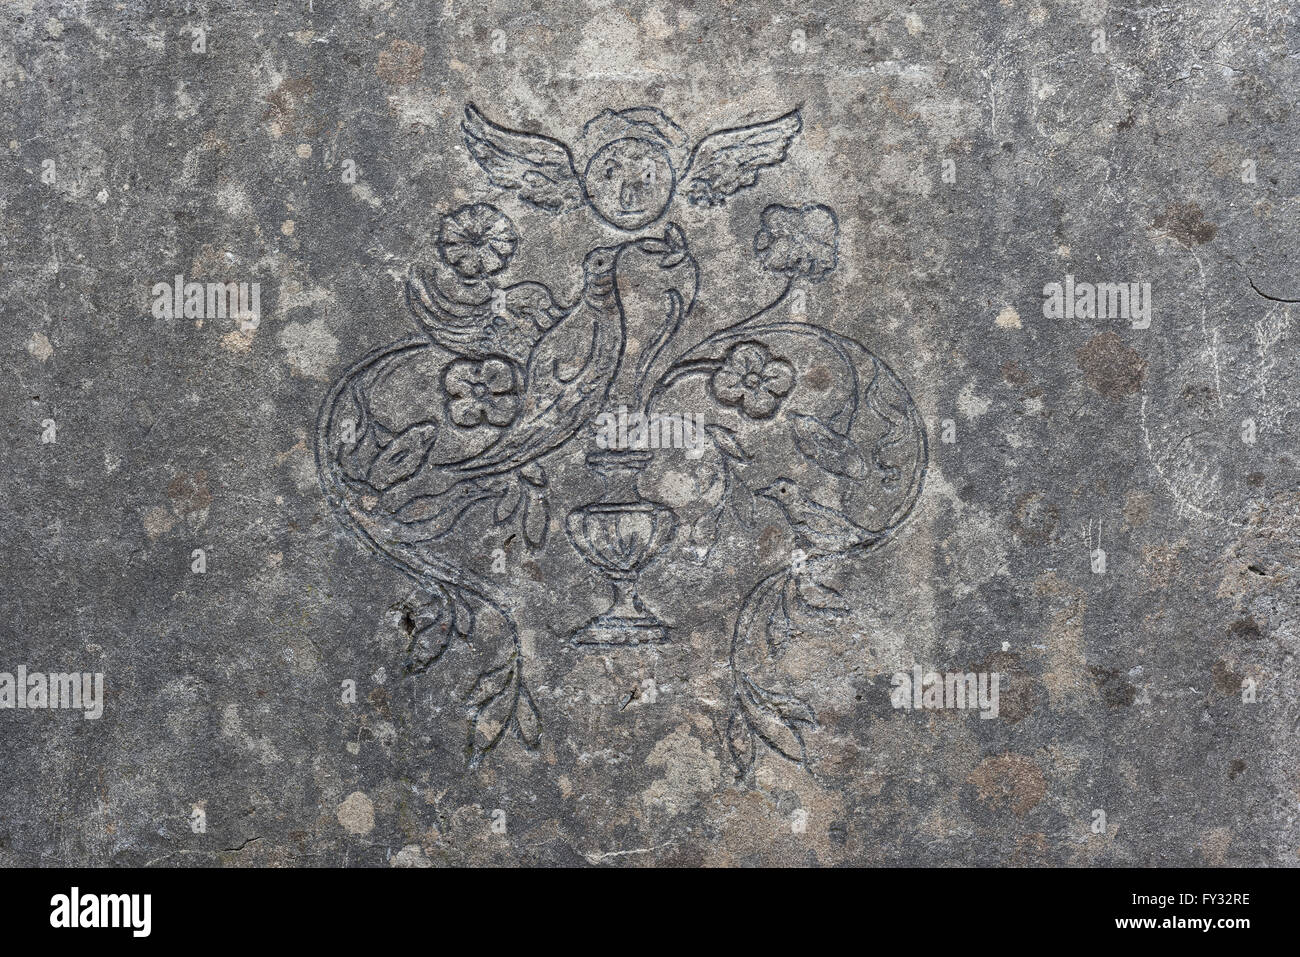 Relief carved in concrete, trenches on Monte San Michele, military post from World War I, Isonzo battles, Province - Stock Image